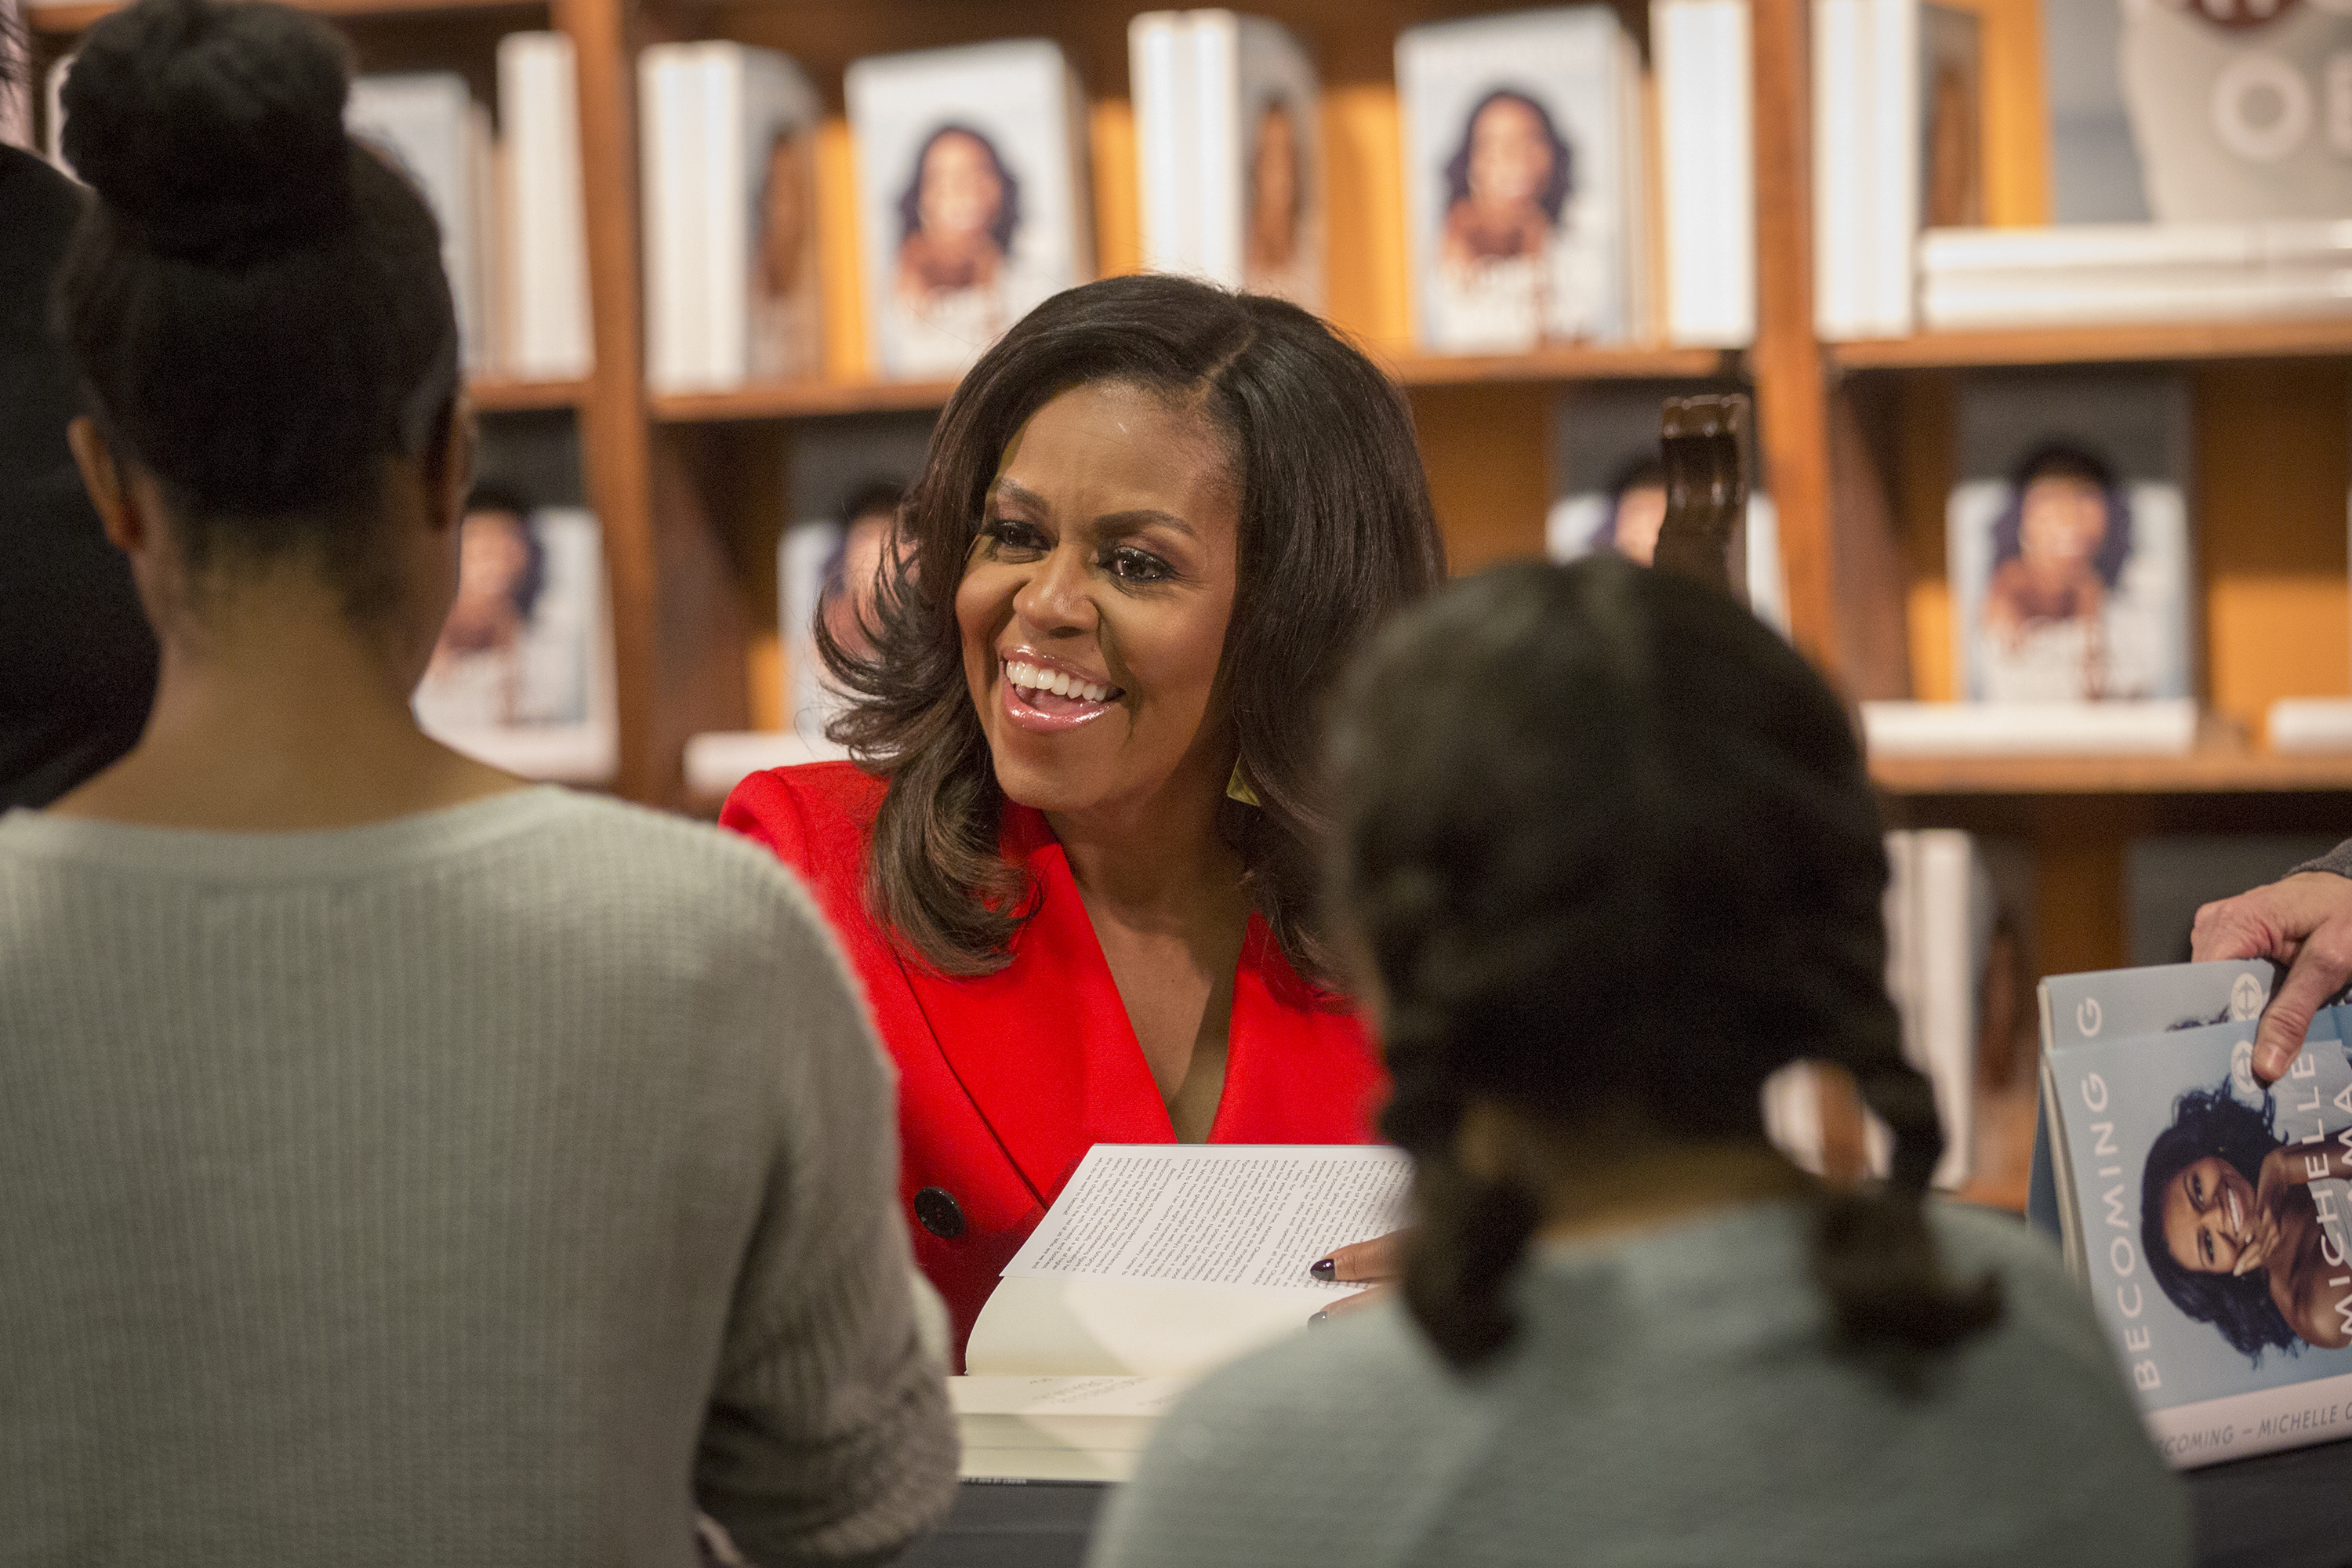 """<p>Former first lady Michelle Obama met folks and signed copies of her new memoir """"Becoming"""" at the Tattered Cover Bookstore on Colfax Avenue in Denver Thursday Dec. 13, 2018. The line stretched up from the lower level of the store all the up and around the main floor of the bookseller.</p>"""